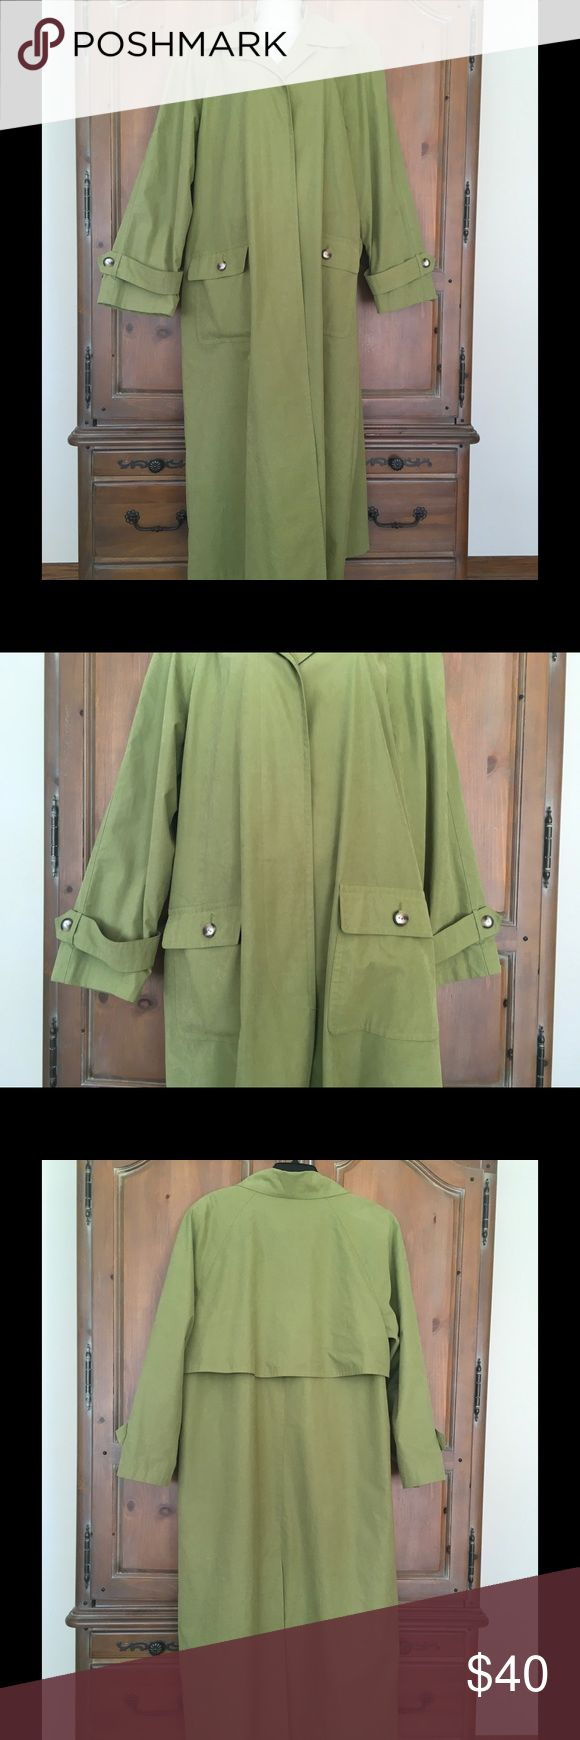 """Gallery Cotton Blend Easter/Spring Trench Coat Gorgeous pea green color. Hidden front buttons; rear kick pleat; 2 front button pockets; fully lined. 70% cotton; 20% polyester; 10% nylon. Flat measurements: Armpit to armpit: 25""""; sleeve length from armpit: 18""""; Length: 53"""". Beautiful coat in pristine nearly new condition! Gallery Jackets & Coats Trench Coats"""